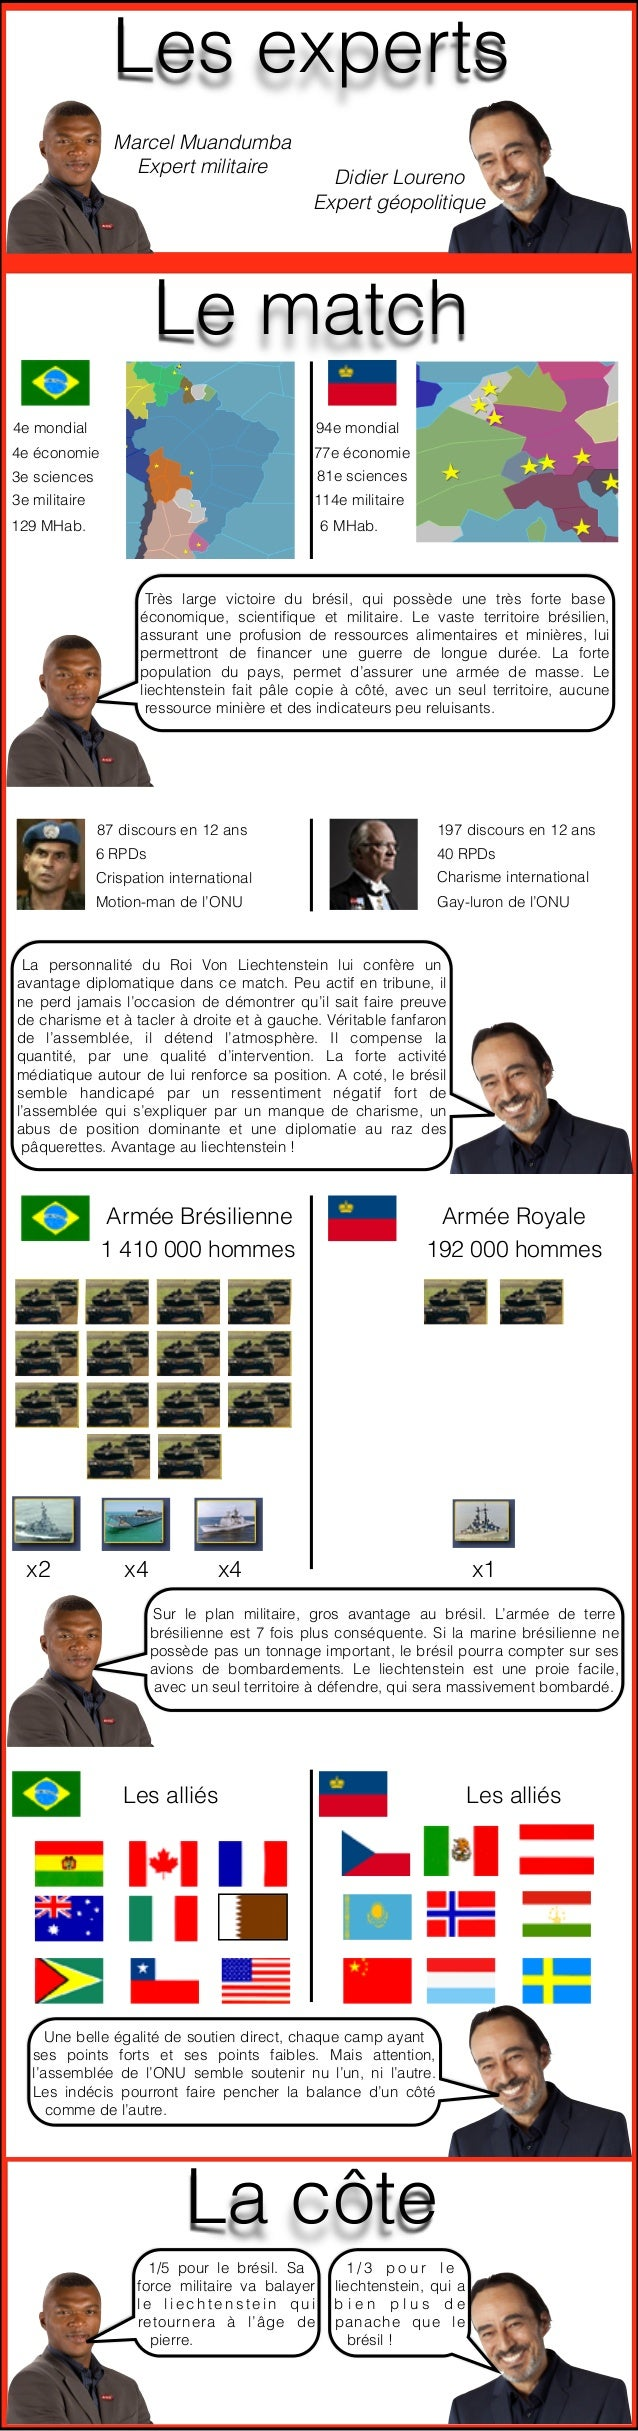 Les experts Marcel Muandumba Expert militaire Didier Loureno Expert géopolitique http:// www131.gnoodipl o.com/dist/img/ a...